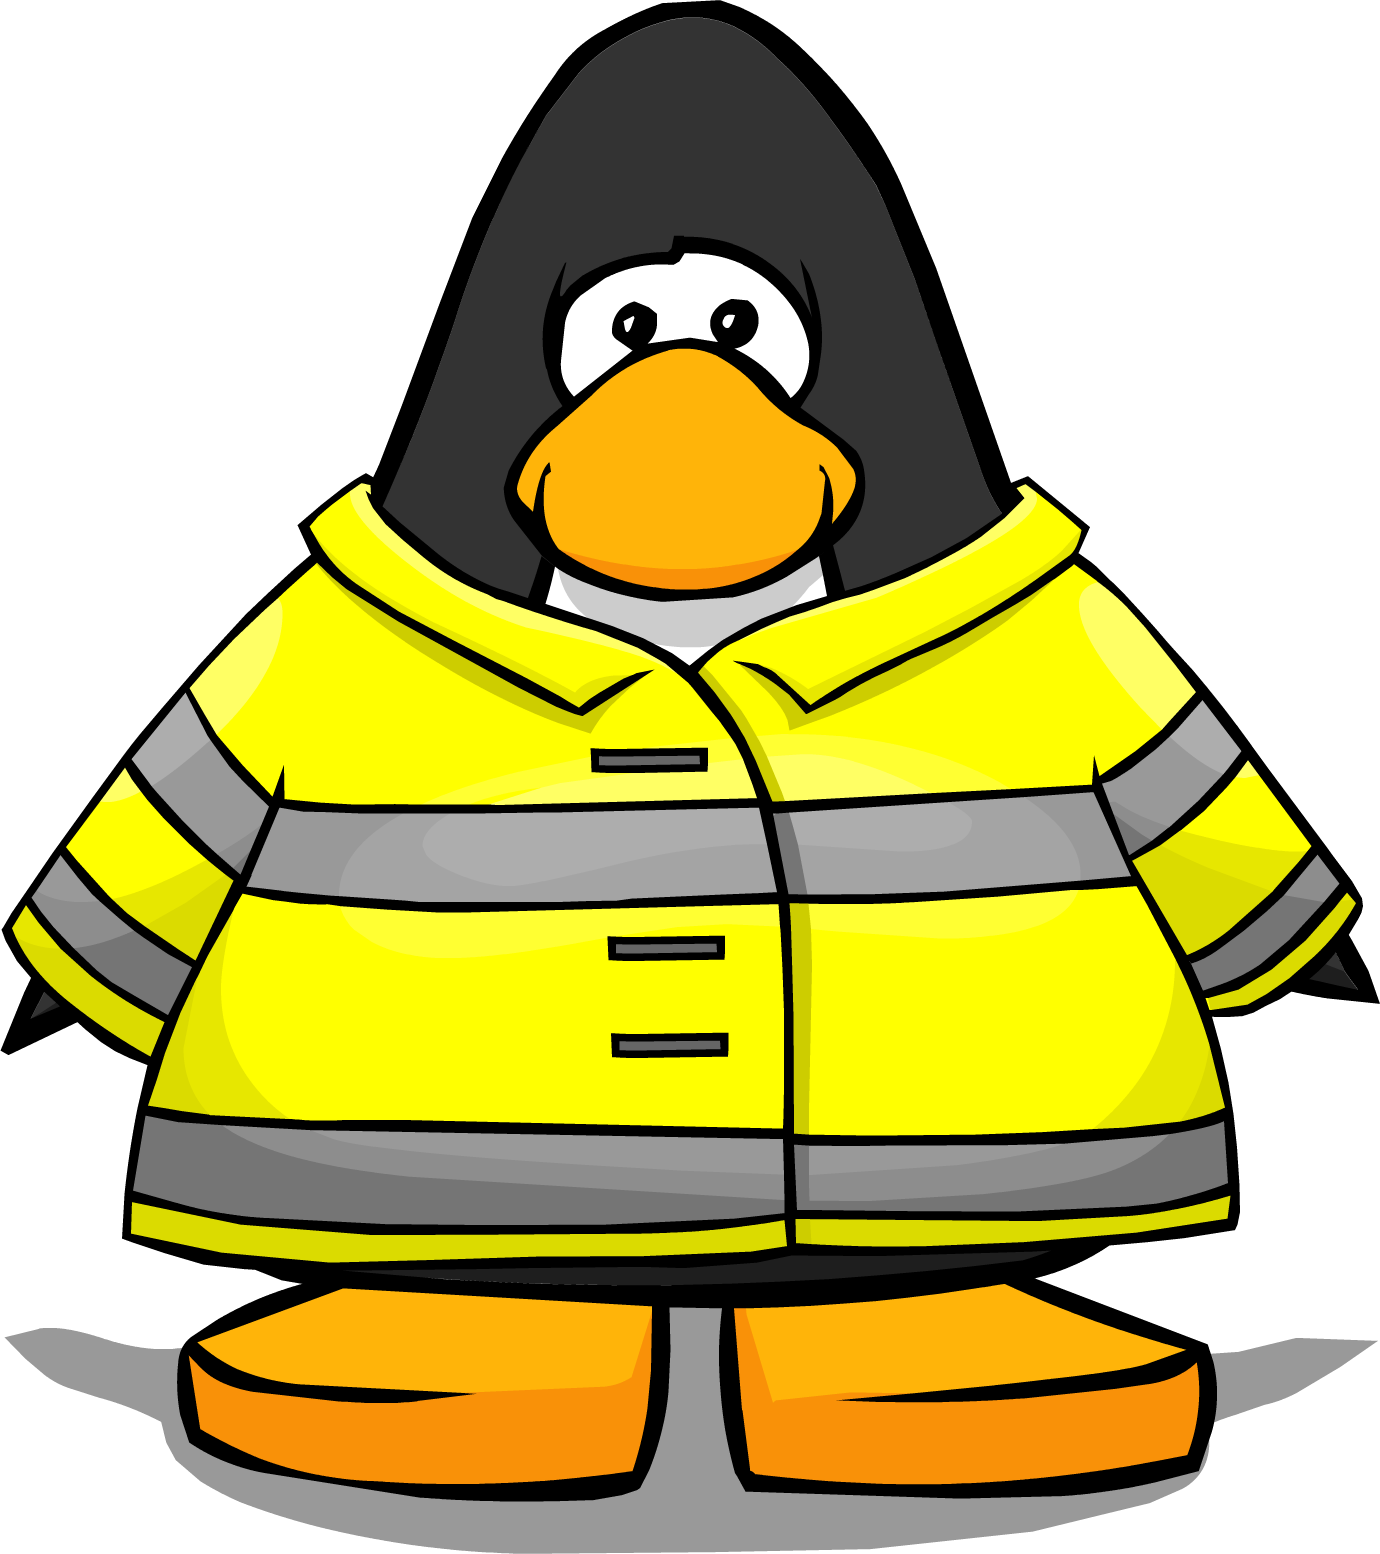 Image firefighter jacket from. Fireman clipart colouring page